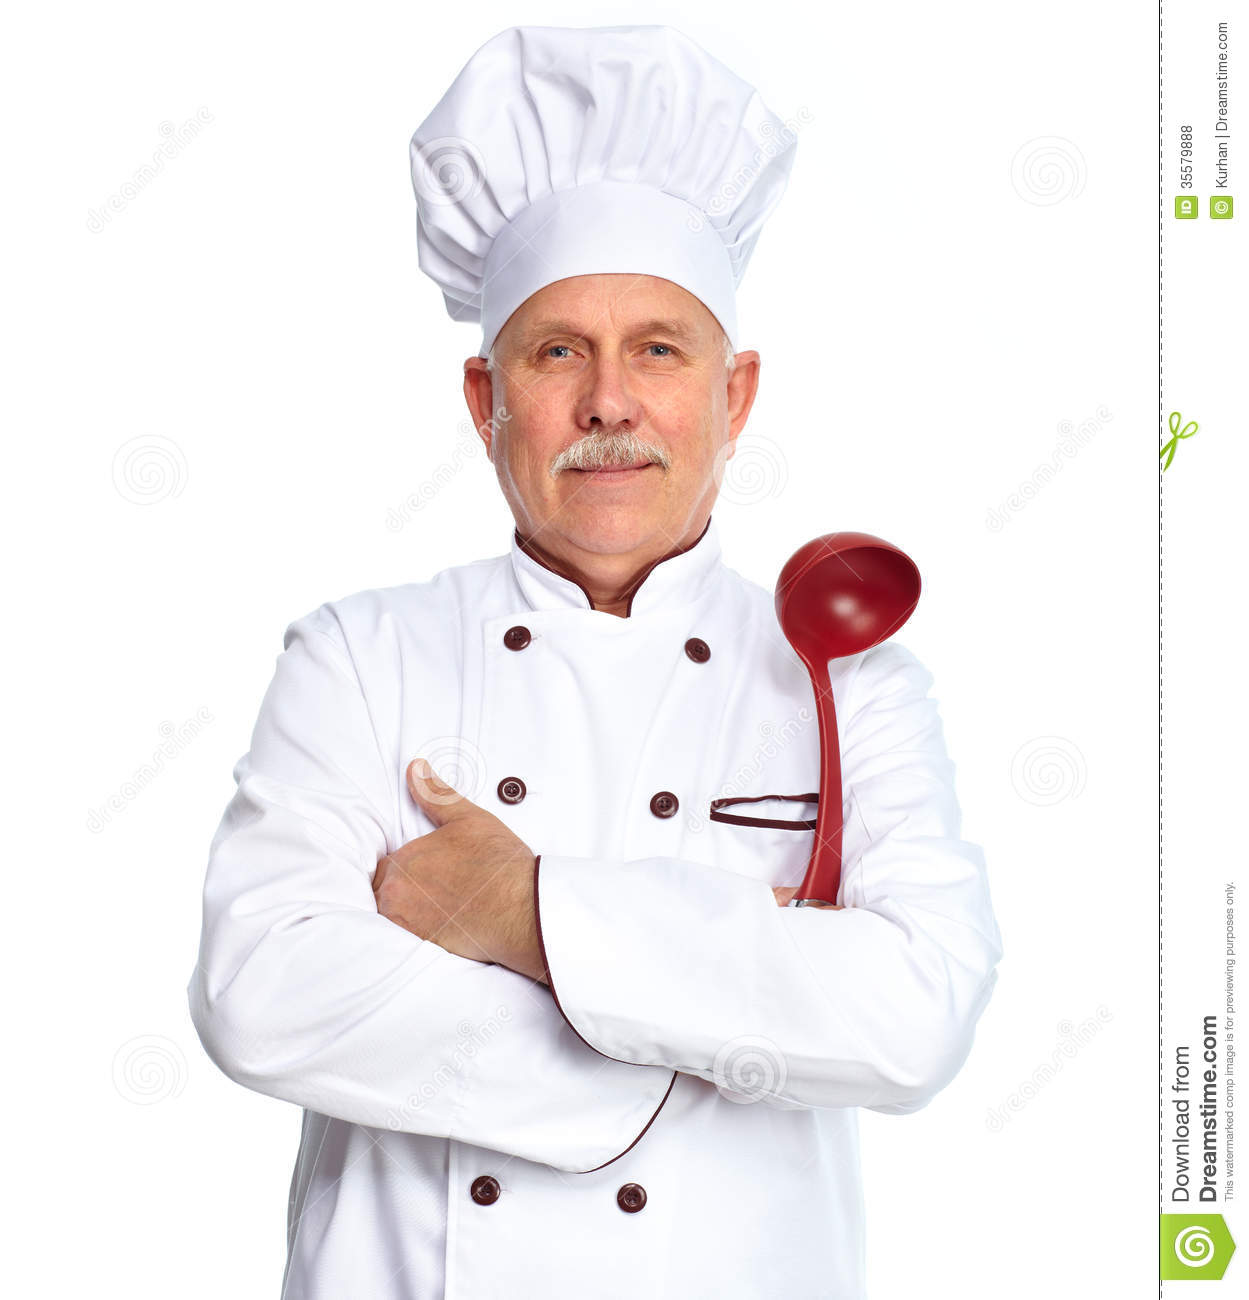 Http Www Dreamstime Com Royalty Free Stock Photos Chef Ladle Mature Professional Man Isolated Over White Background Image35579888